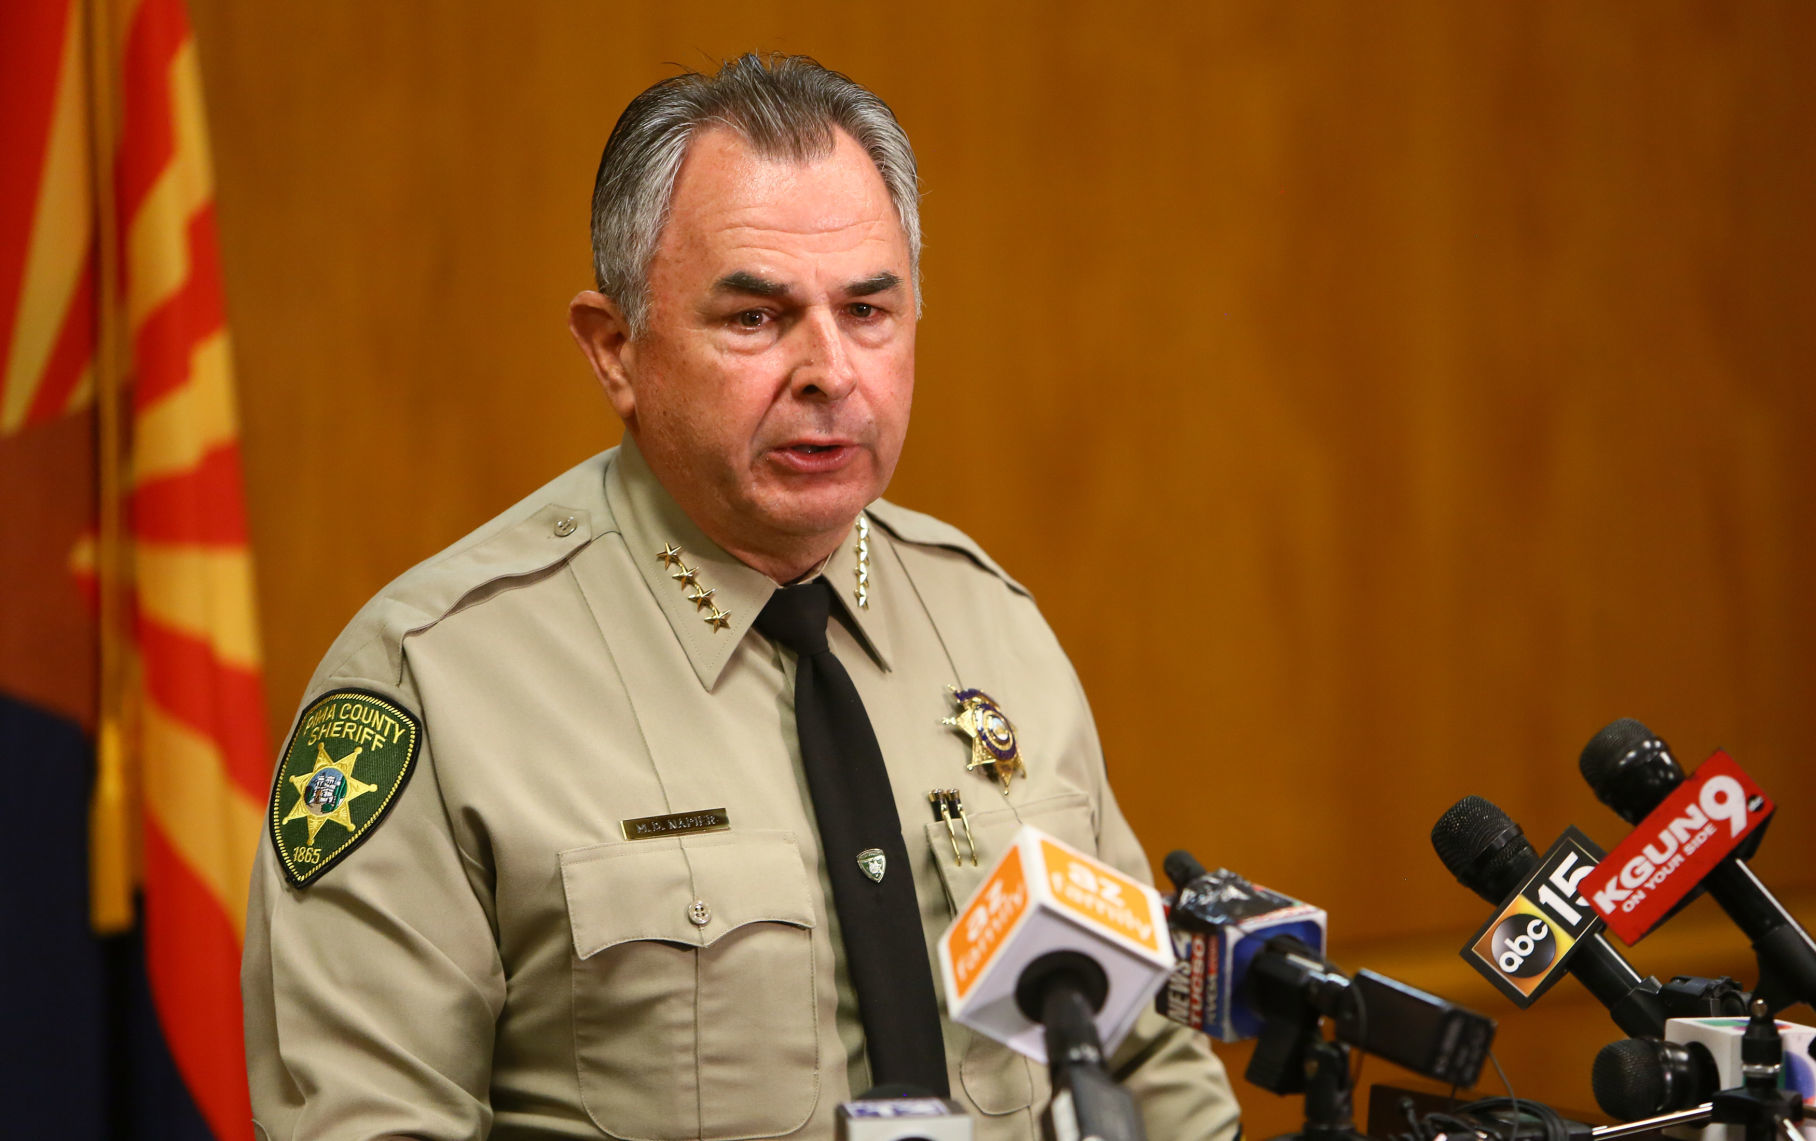 Sheriff Napier removes federal immigration agents from Pima County jail | Tucson.com